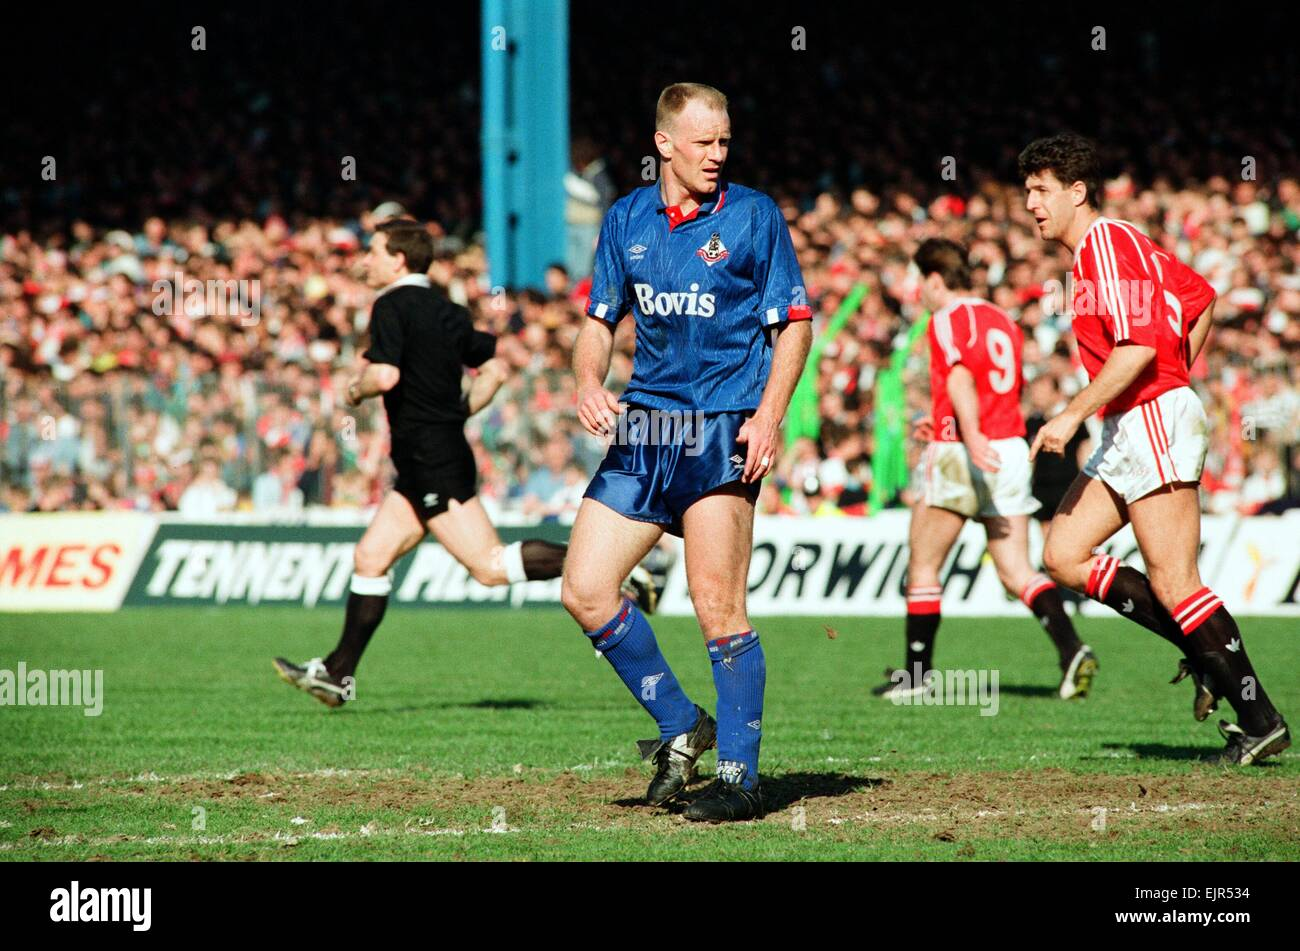 Andy Ritchie. FA Cup. Manchester United 3 v Oldham Athletic 3. 8th April 1990 - Stock Image